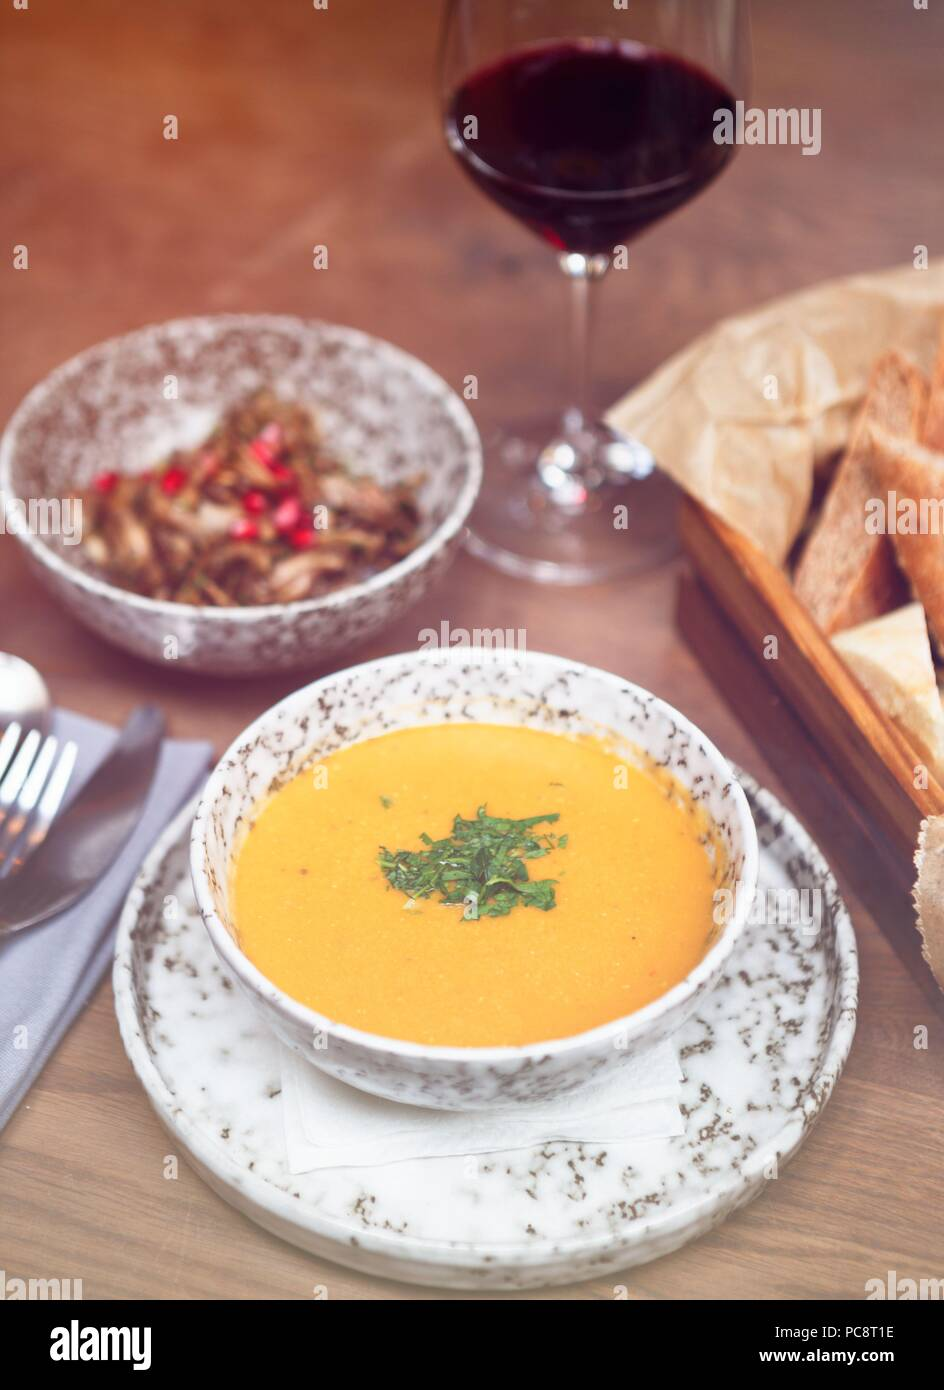 Traditional Georgian Restaurant Food Menu For Dinner Enjoy Exotic Dish From Georgia In Cafe Yellow Corn Soup With Spice Served On Table In Grey Marble Stock Photo Alamy